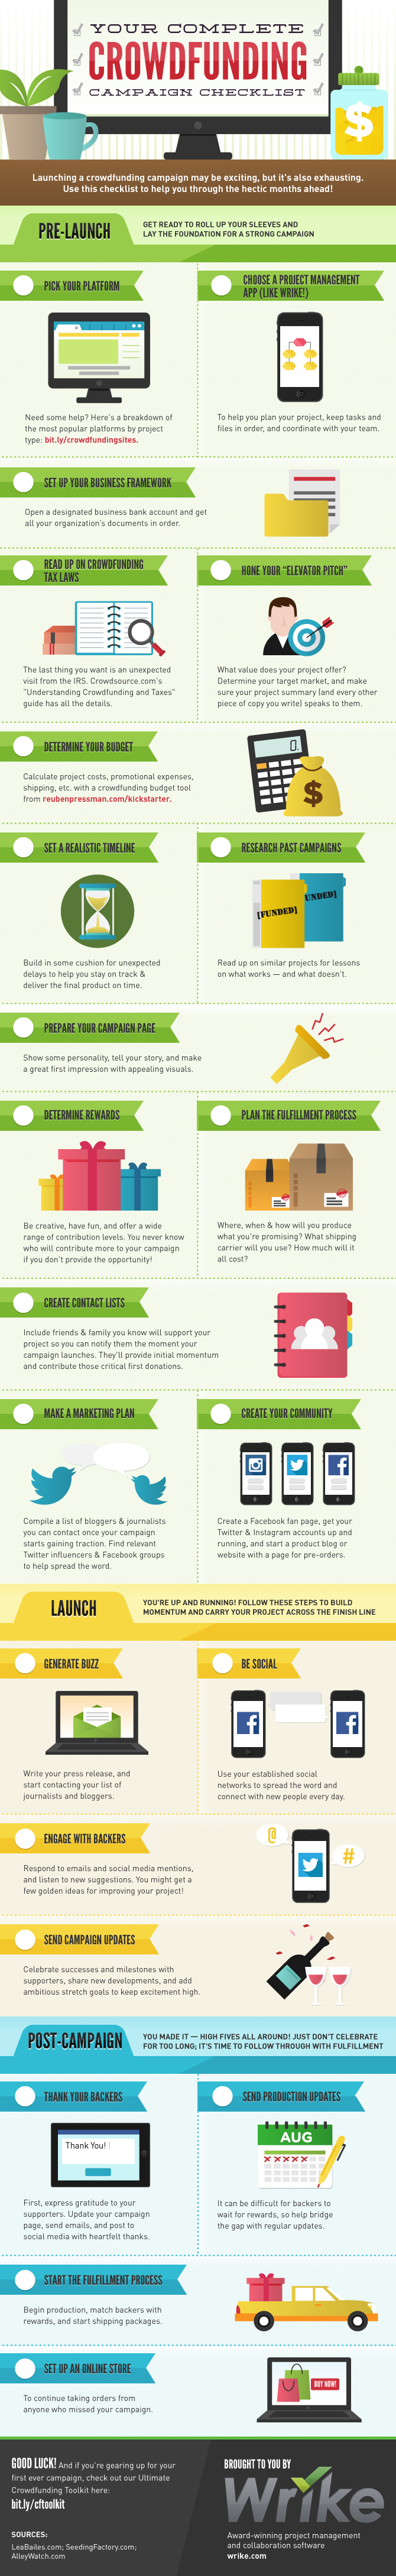 The Ultimate Crowdfunding Campaign Checklist (infographic)